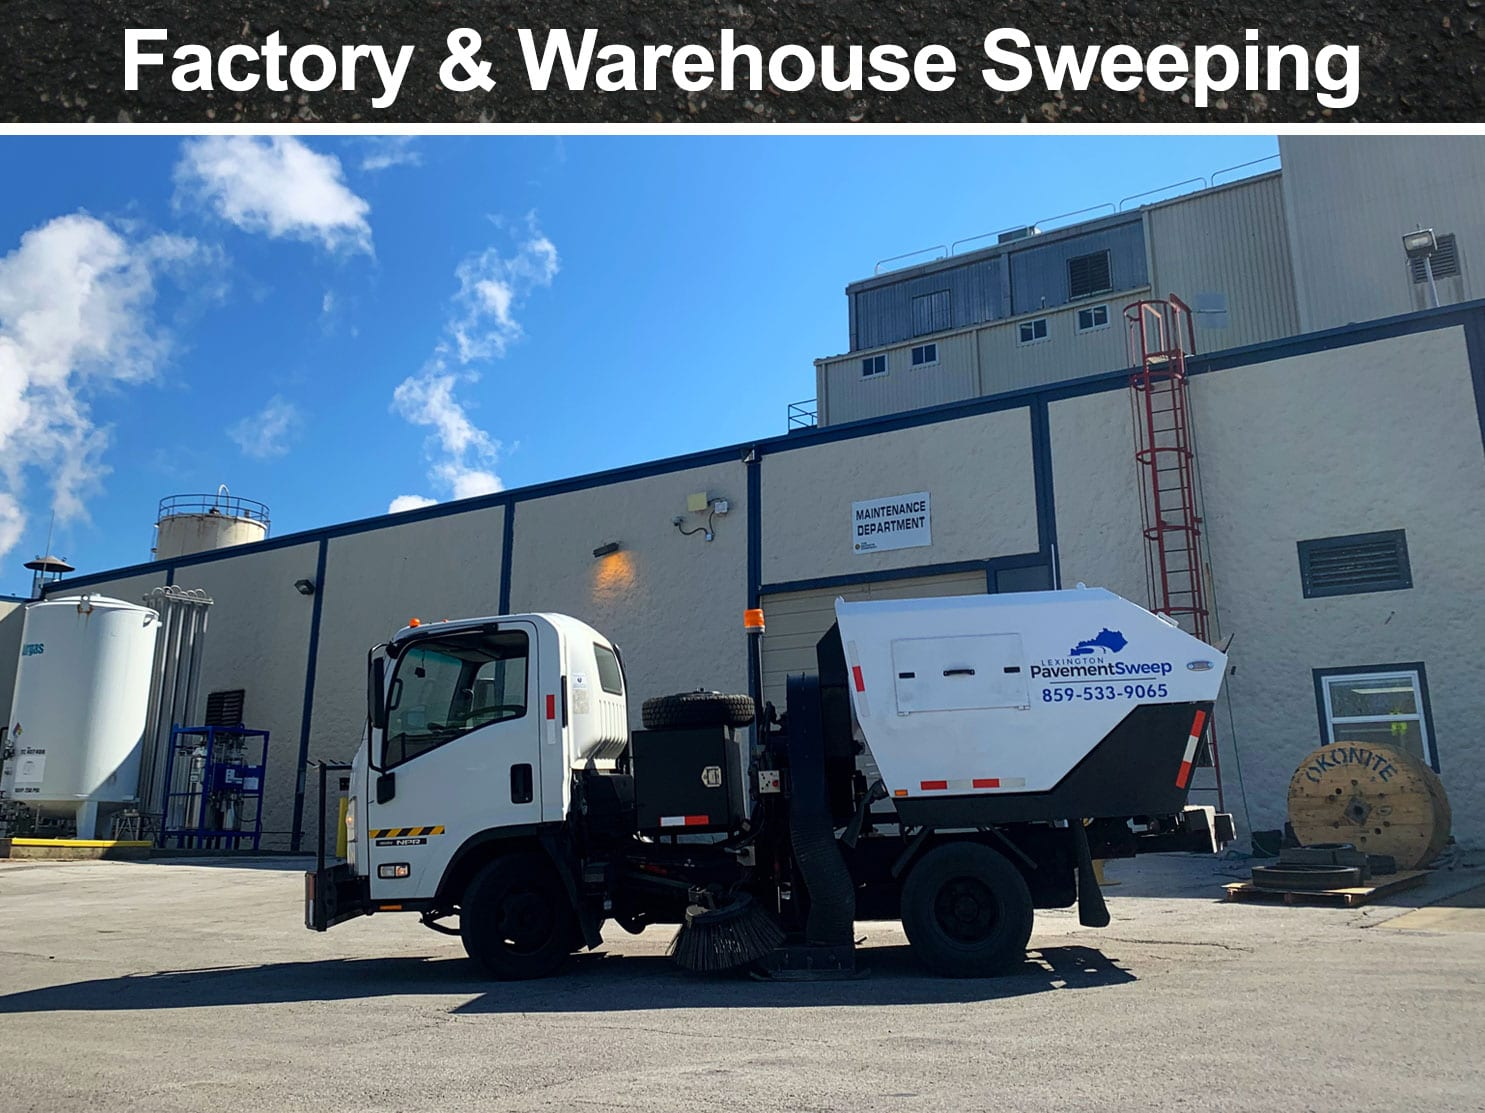 Factory-&-Warehouse-Sweeping